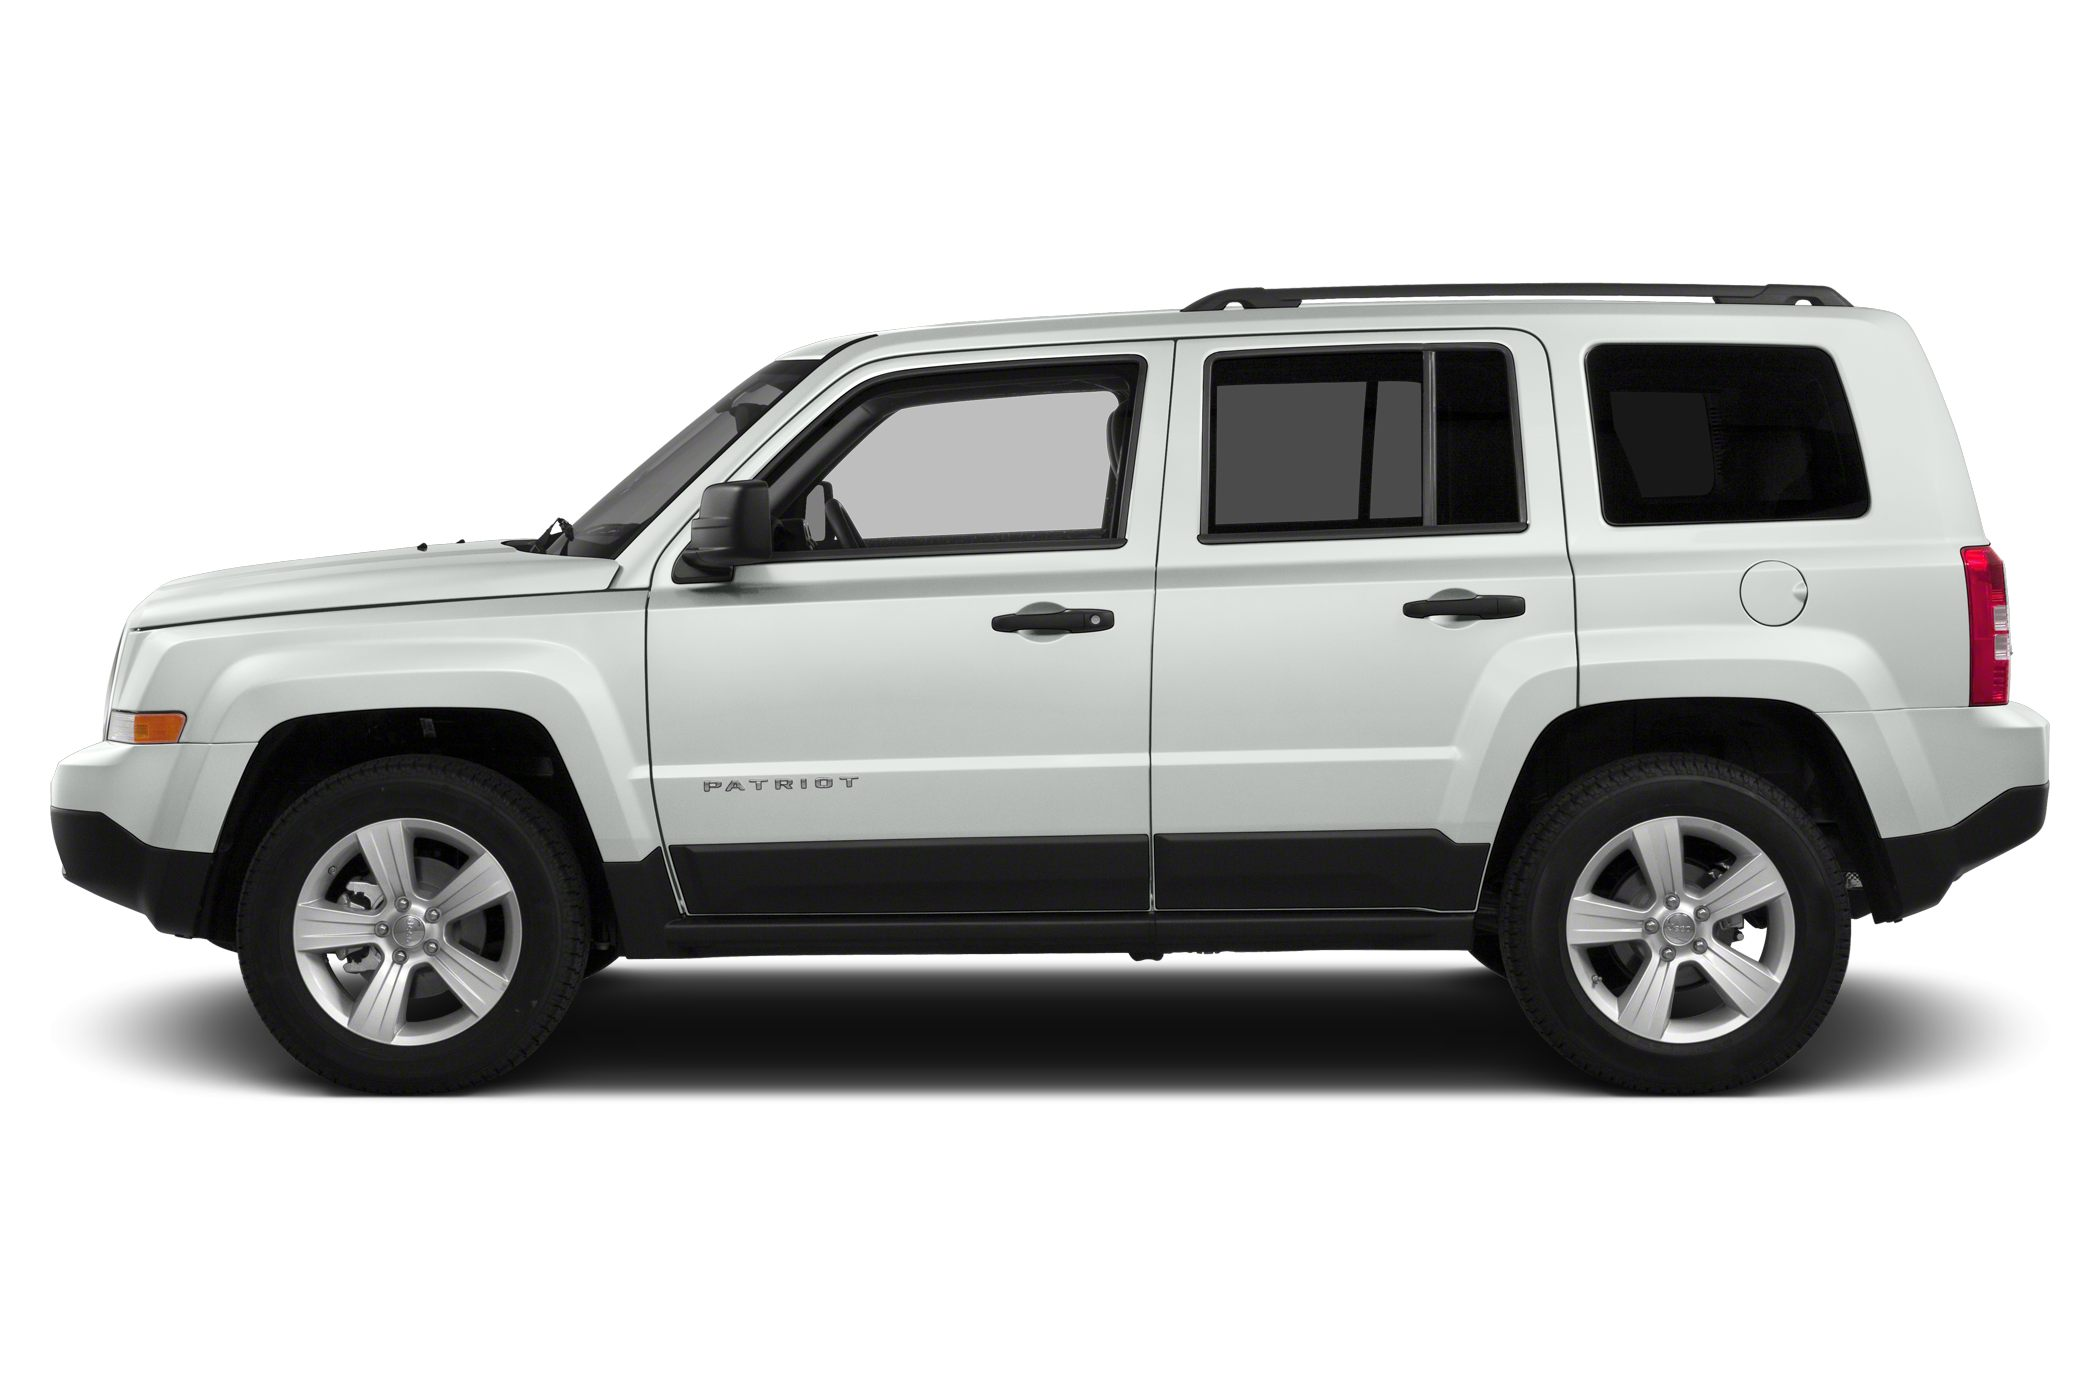 alabama to a employees offer at chrysler tuition jeep new dealers all city dealership york college free in car